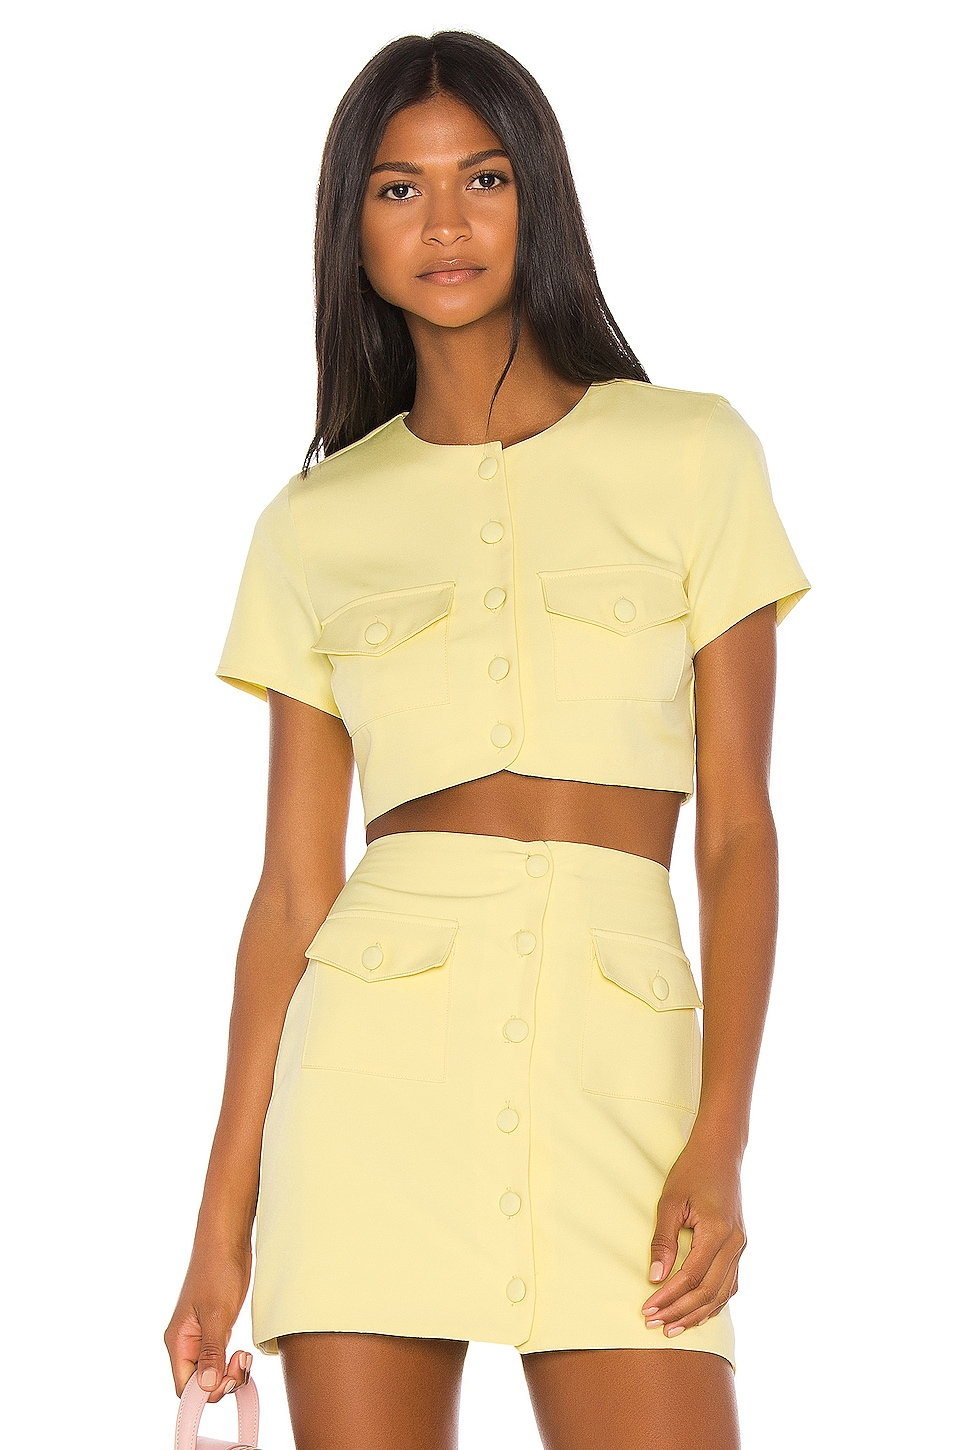 Song of Style Gala Top in Citrus Yellow